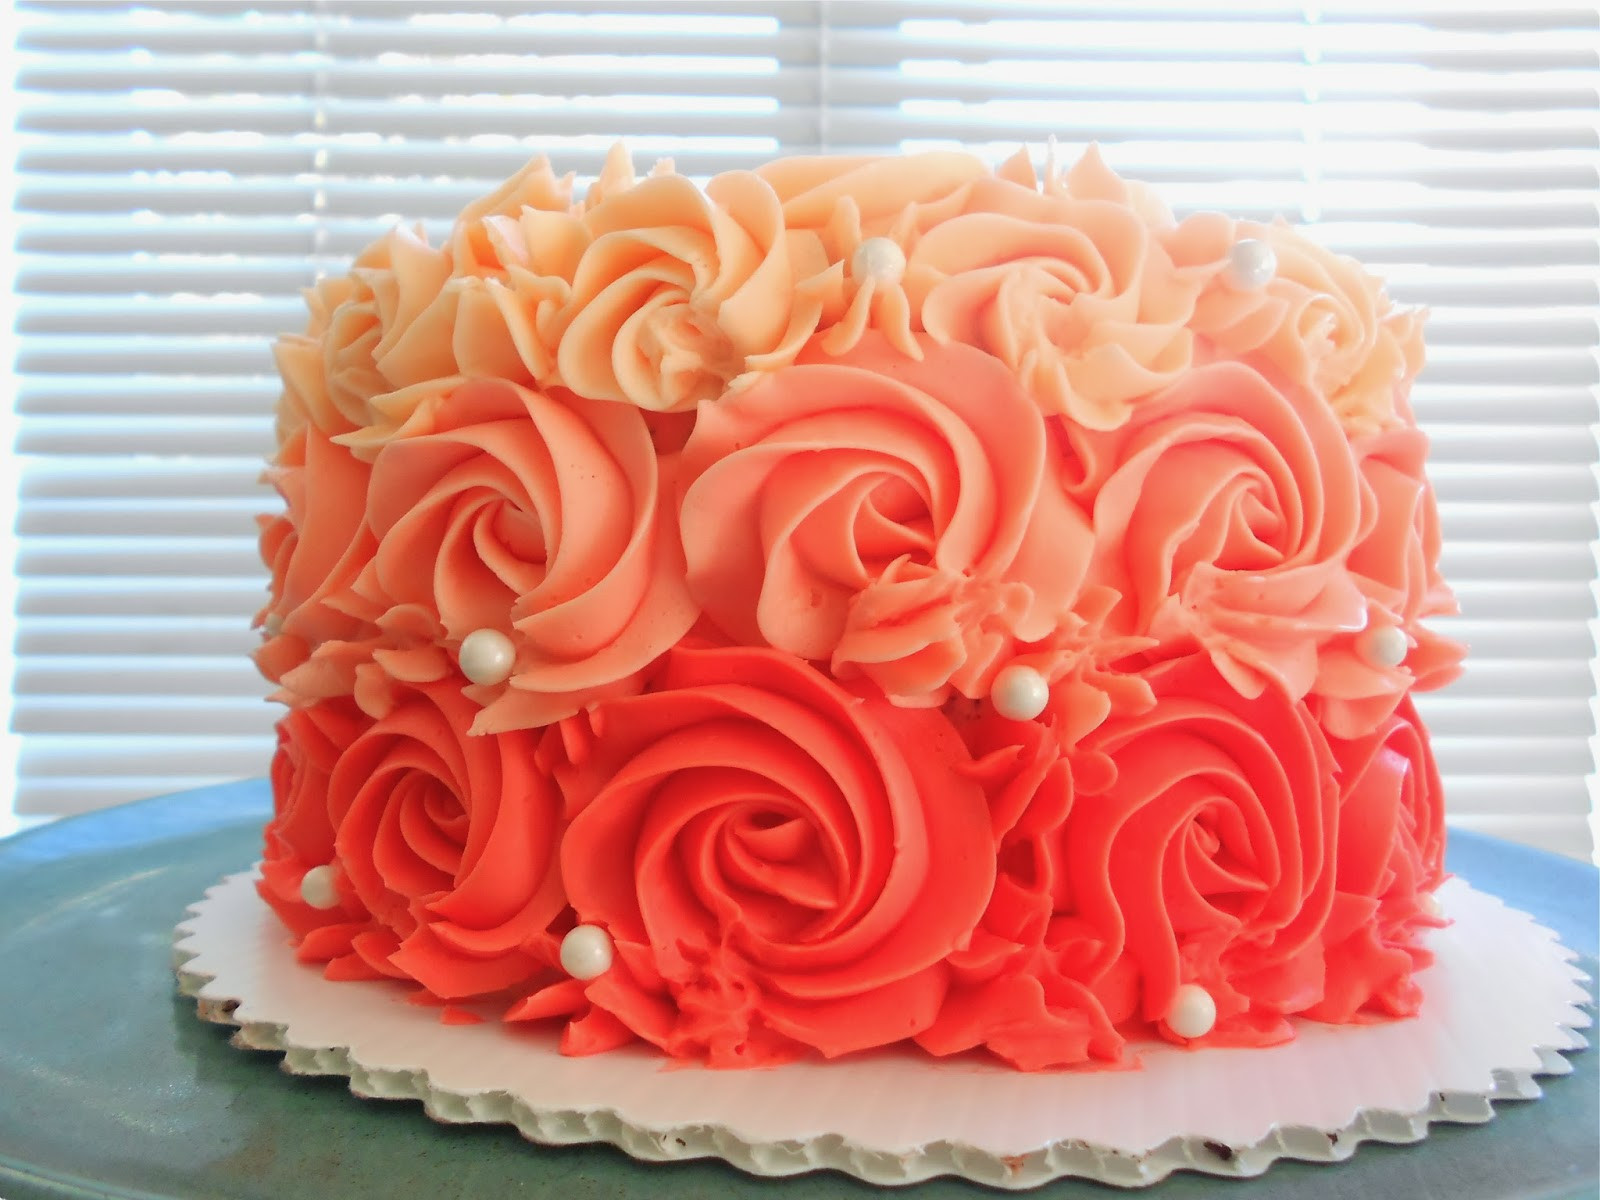 Best ideas about Rose Birthday Cake . Save or Pin Custom Cakes by Lori 60th Ruffled Rose birthday cake Now.